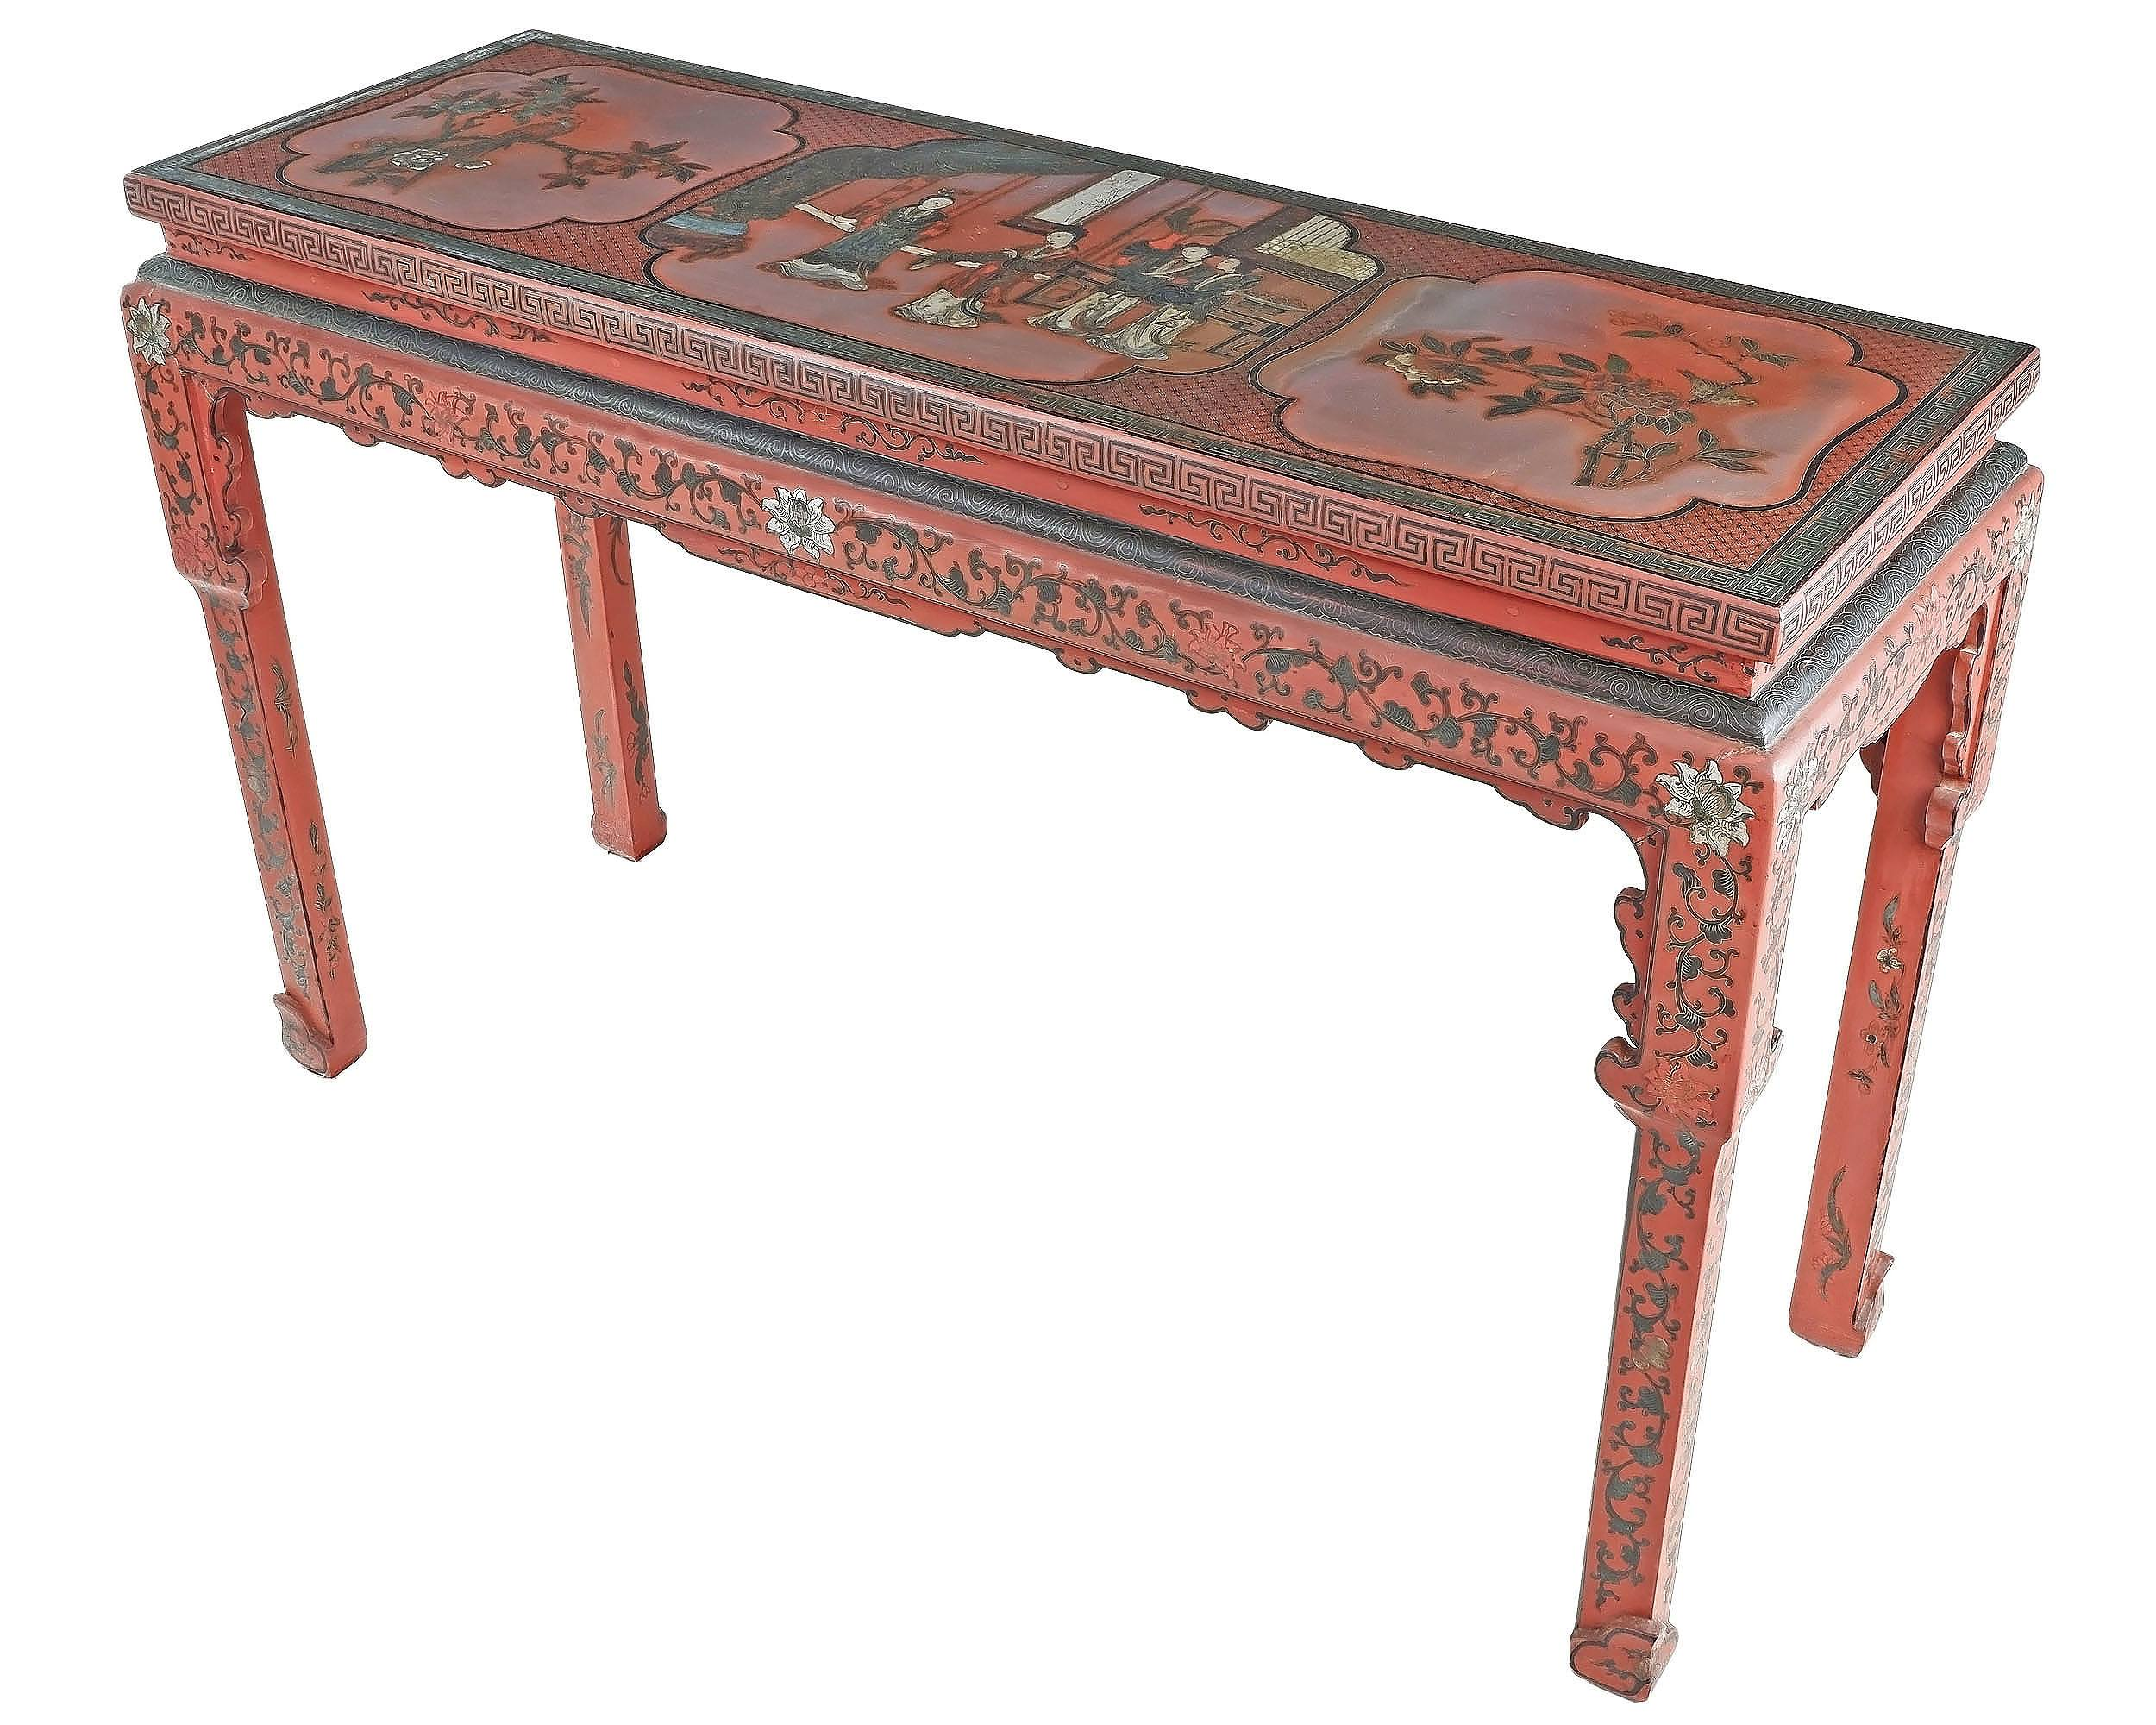 'Chinese Red and Polychrome Lacquered Altar Table with Incised Borders and Details, 20th Century'